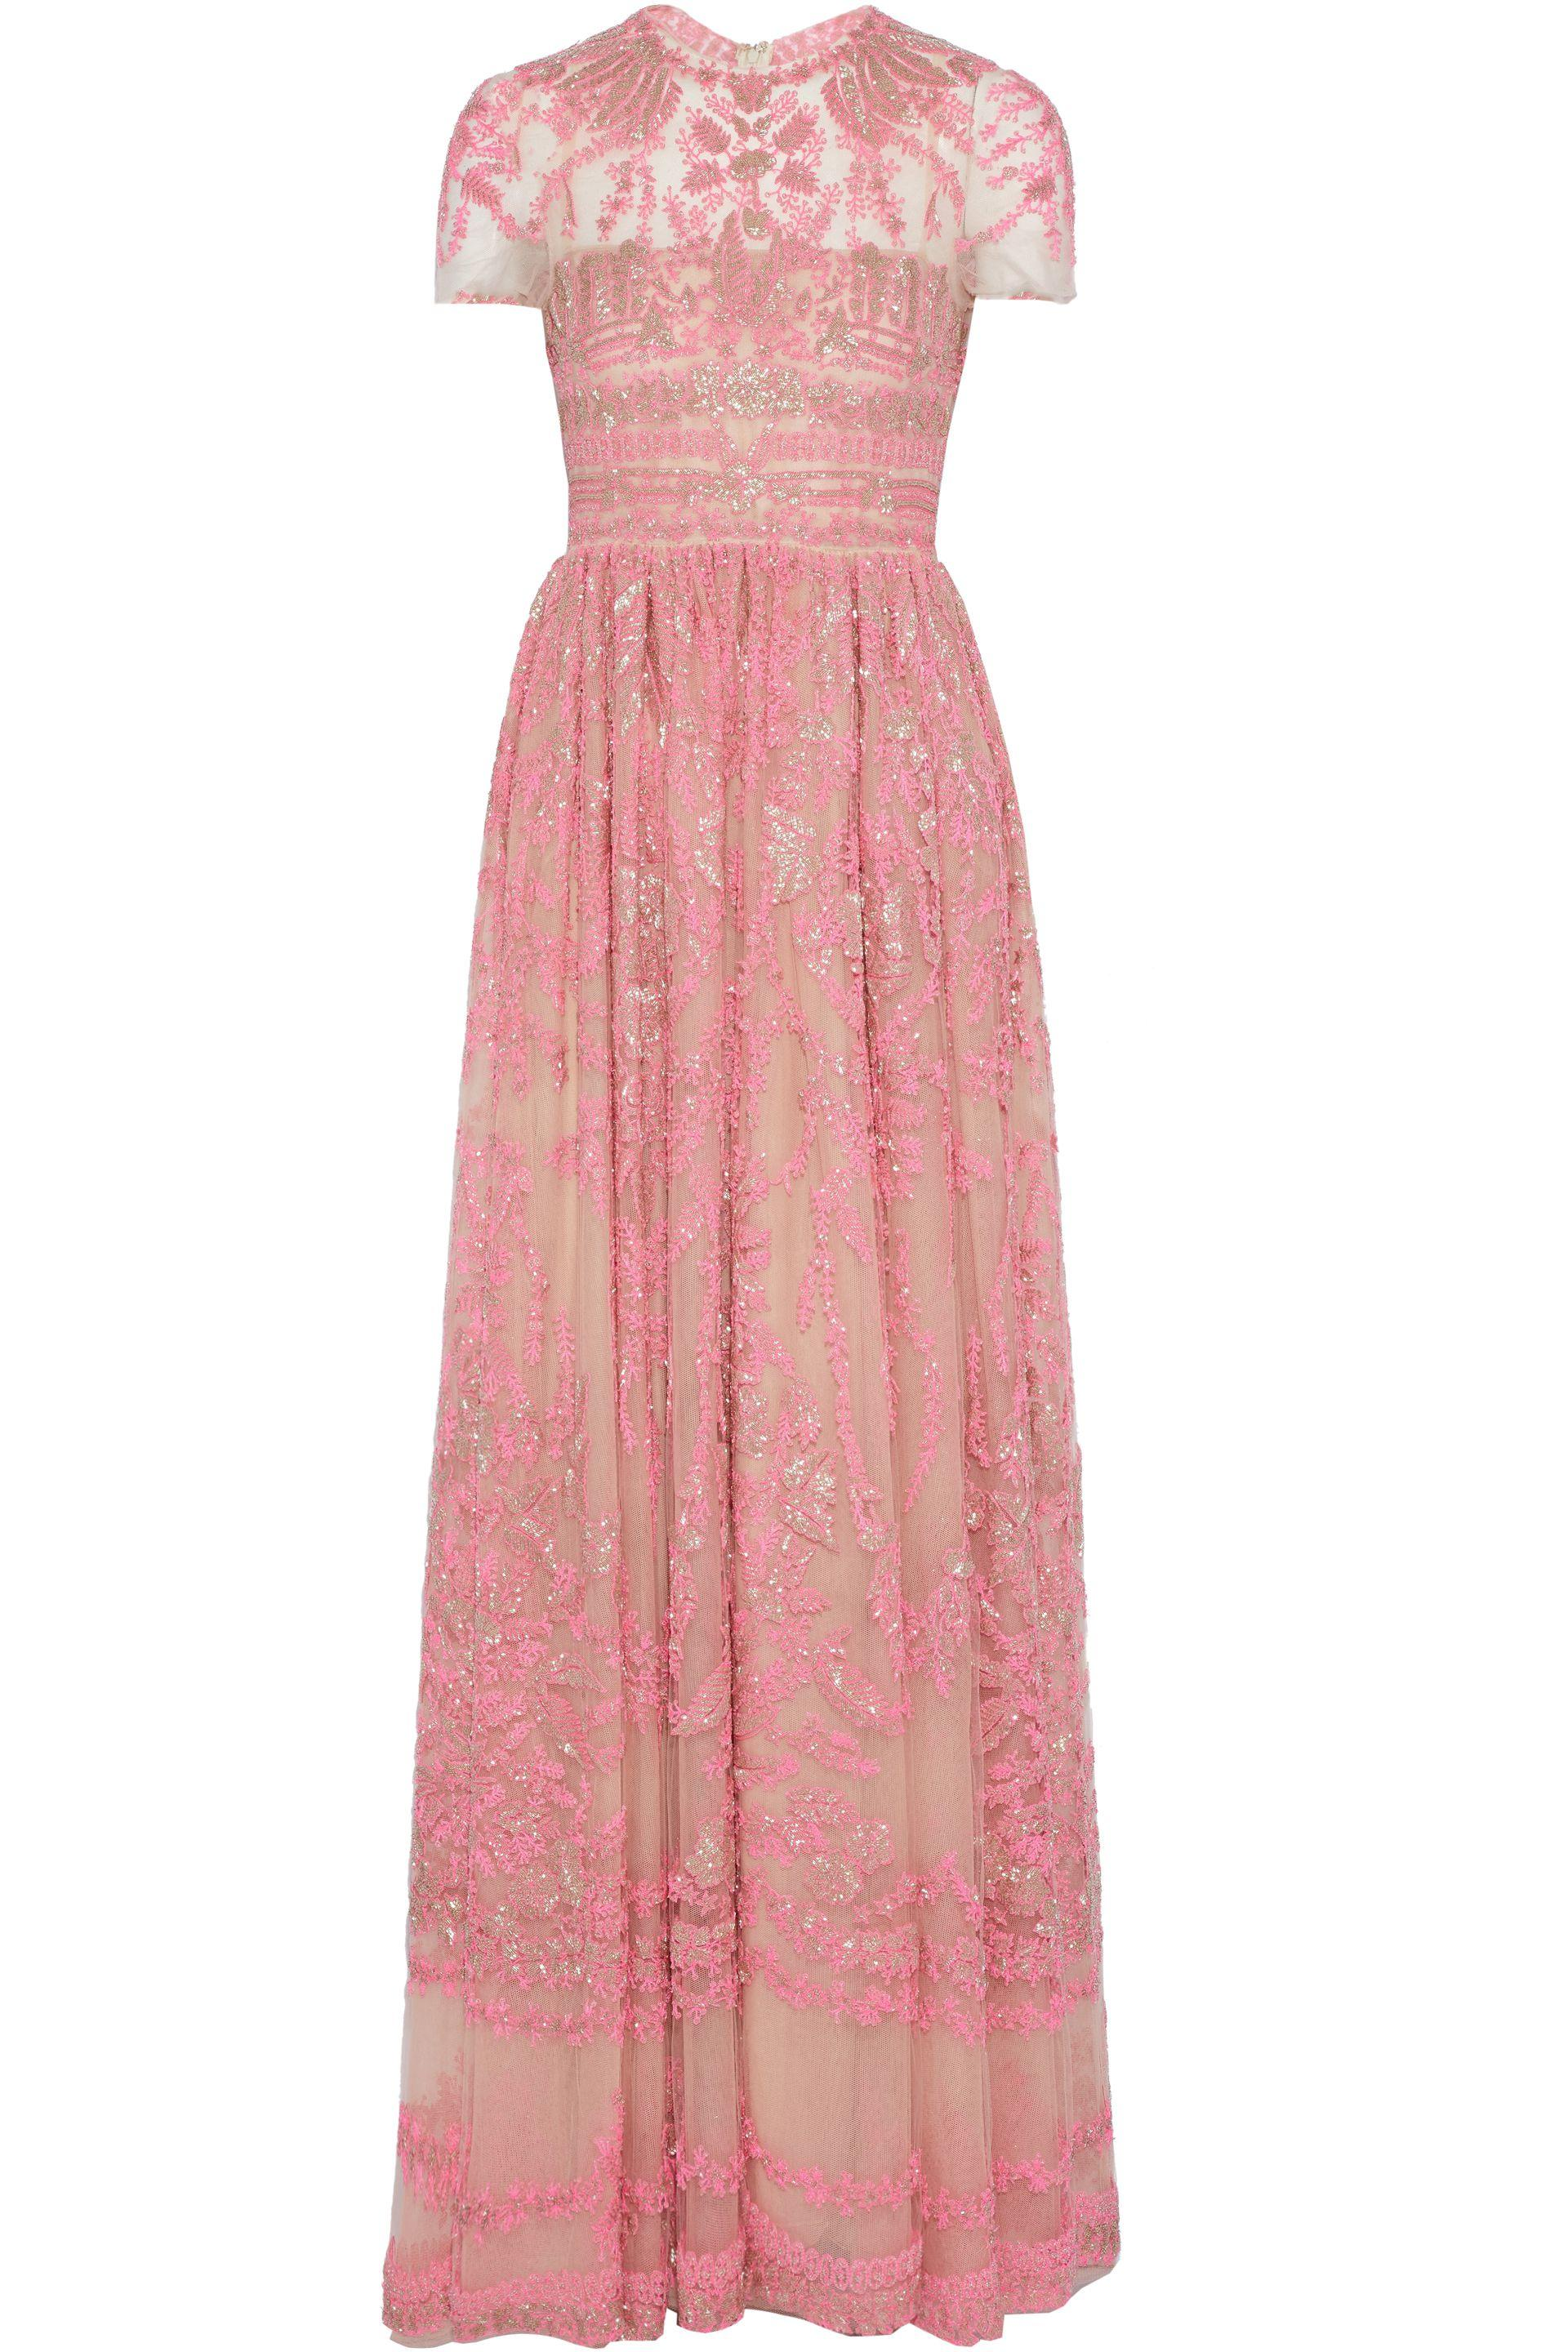 f46afa9b9b36d Valentino - Bead-embellished Embroidered Tulle Gown Pink - Lyst. View  fullscreen